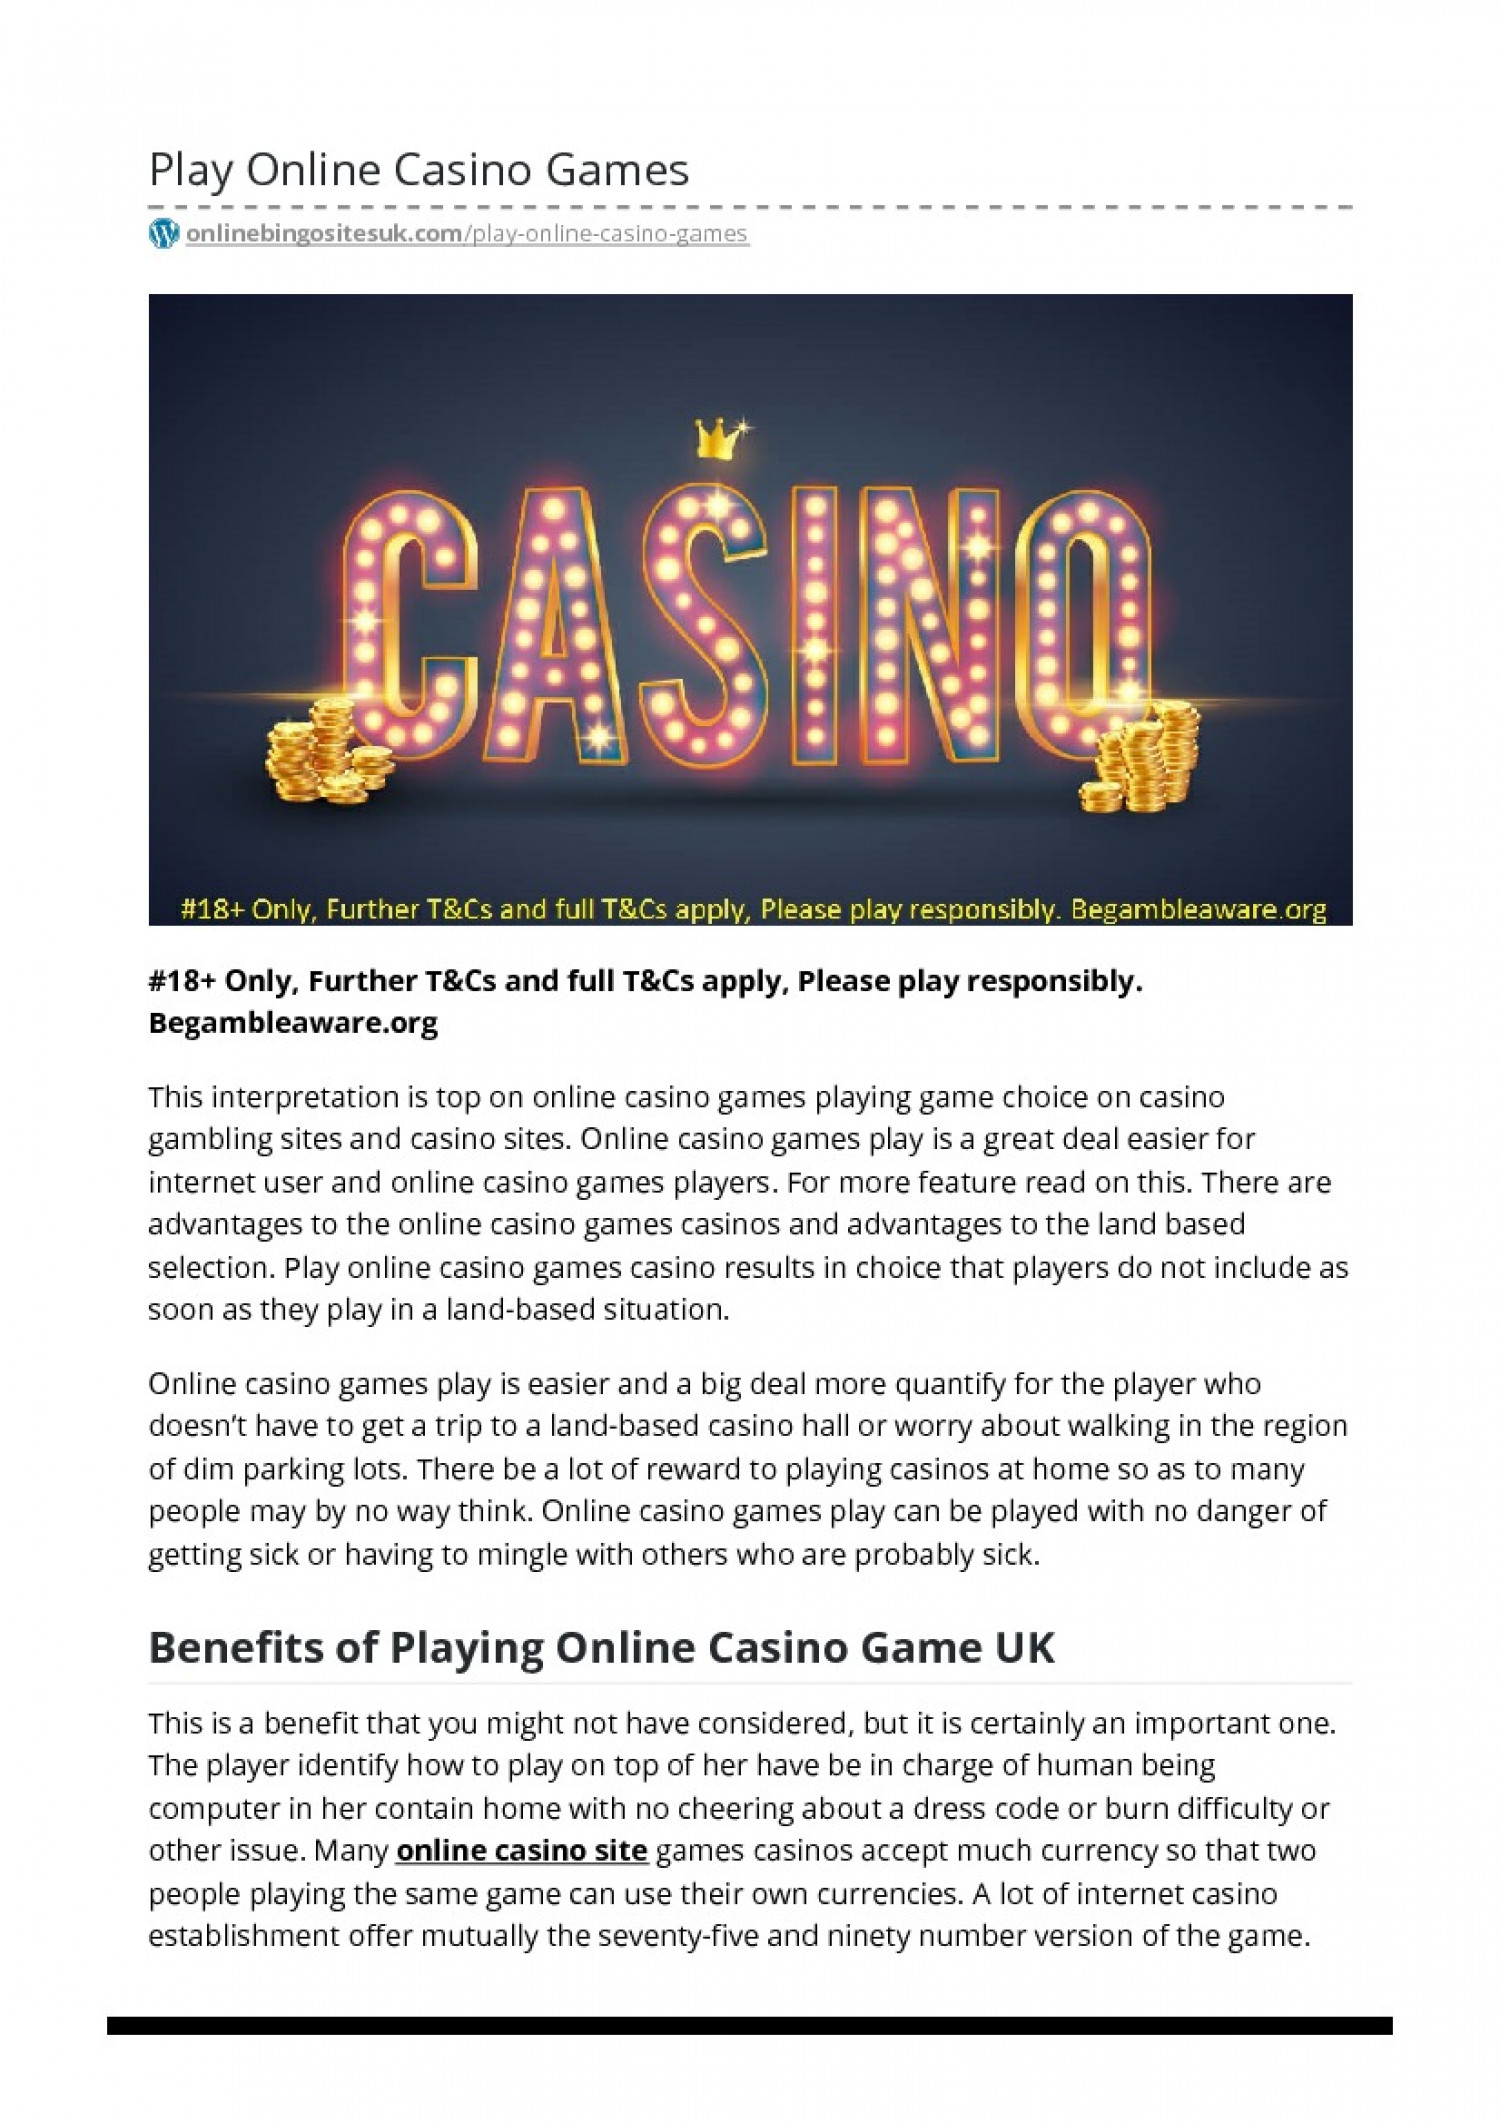 Play Online Casino Games Infographic